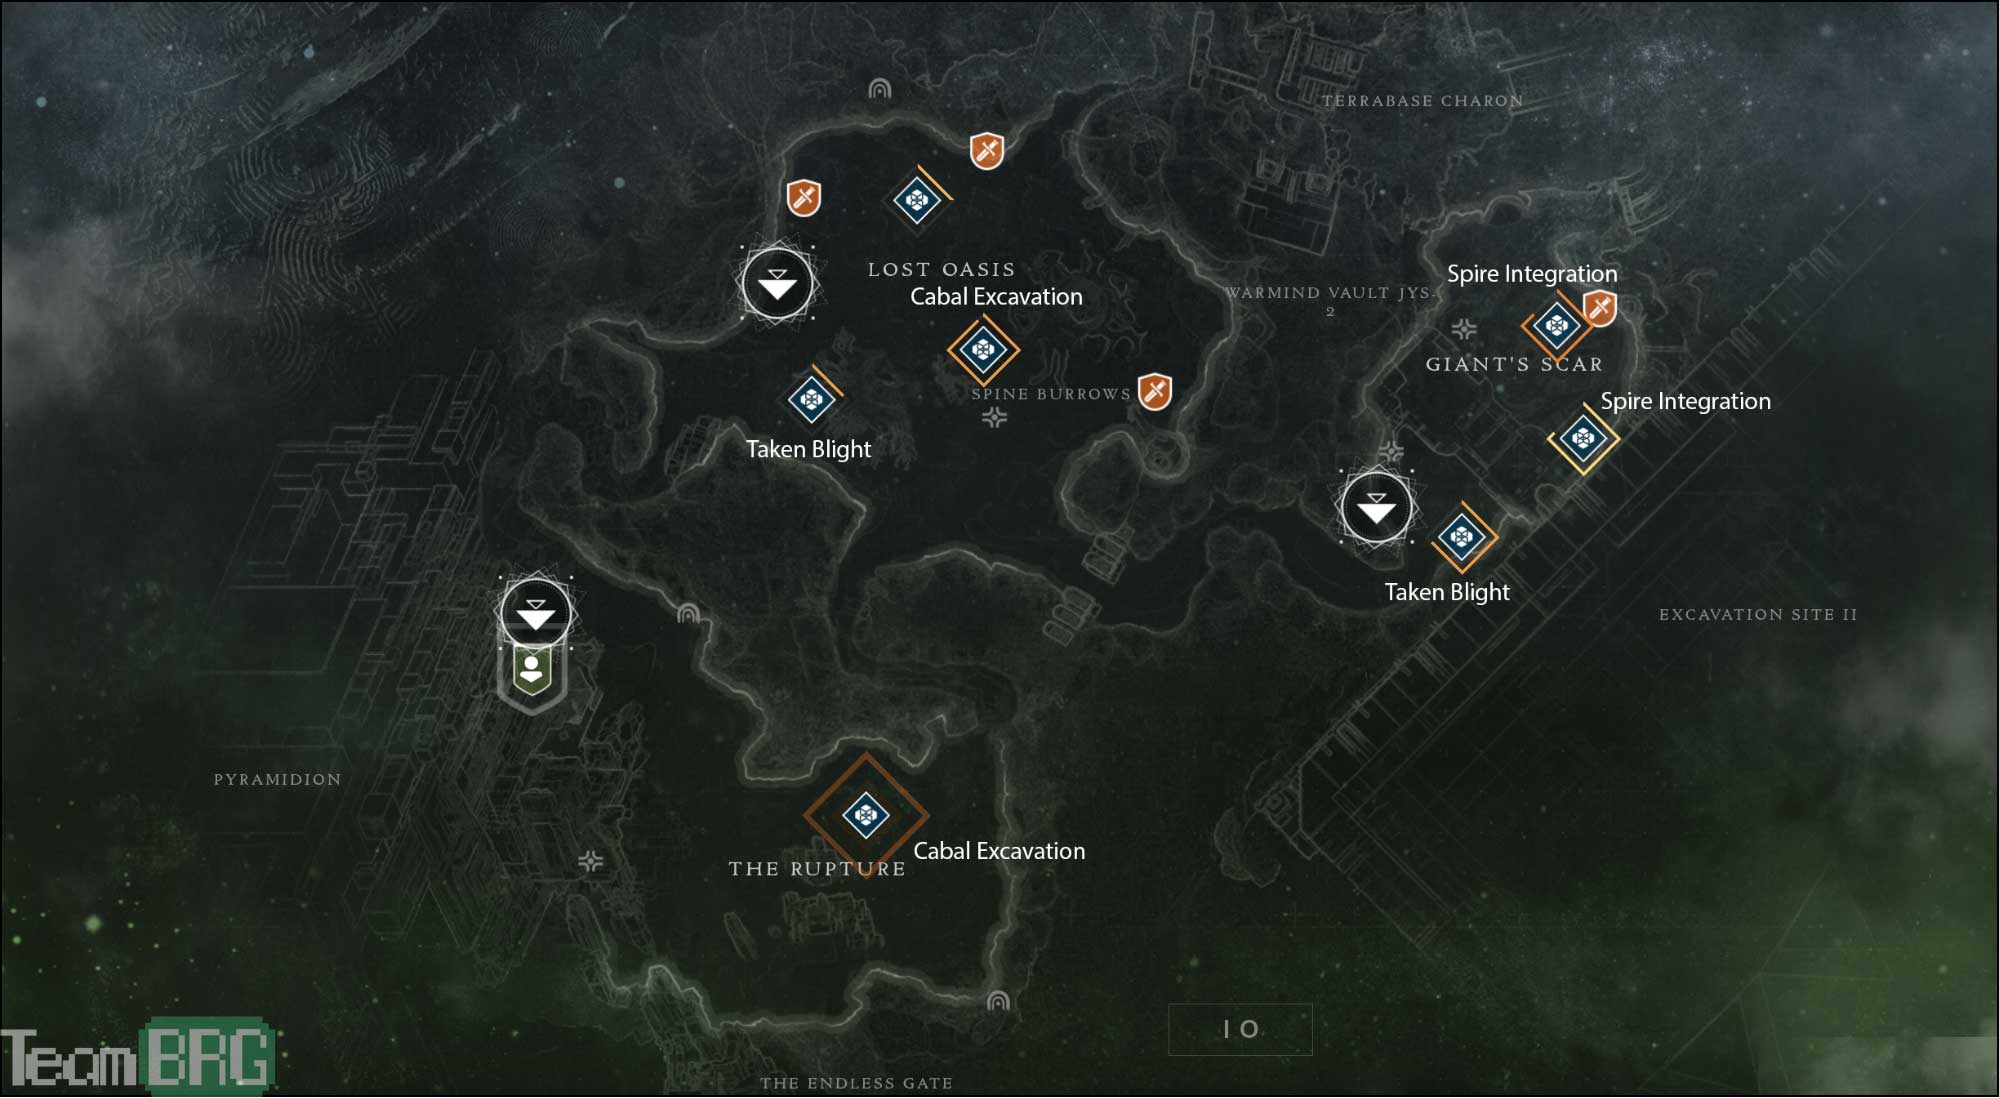 Destiny 2 Public Events Guide, List & Walkthroughs | Team BRG